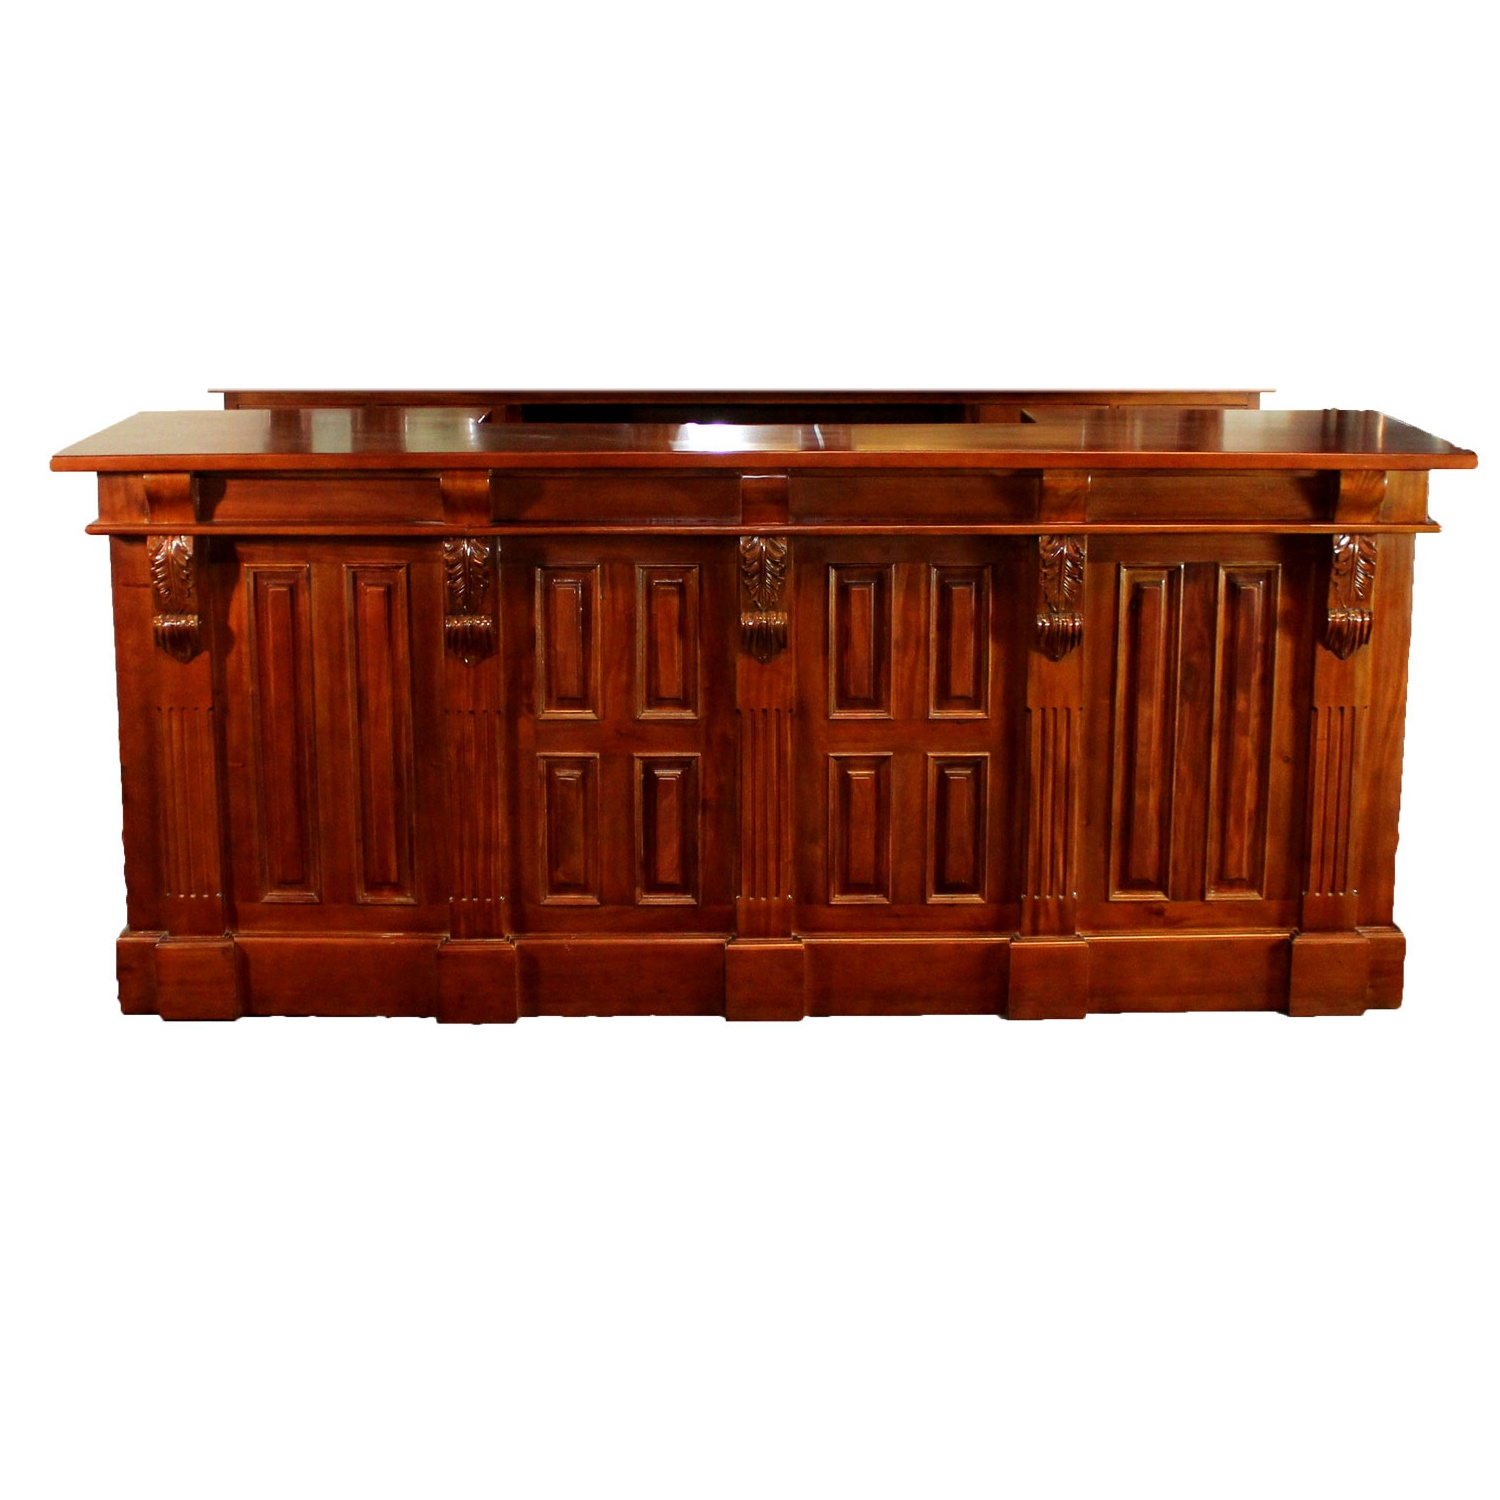 8 39 Mahogany Victorian Front Bar Furniture Antique Replica Sale Home Man Cave The Kings Bay